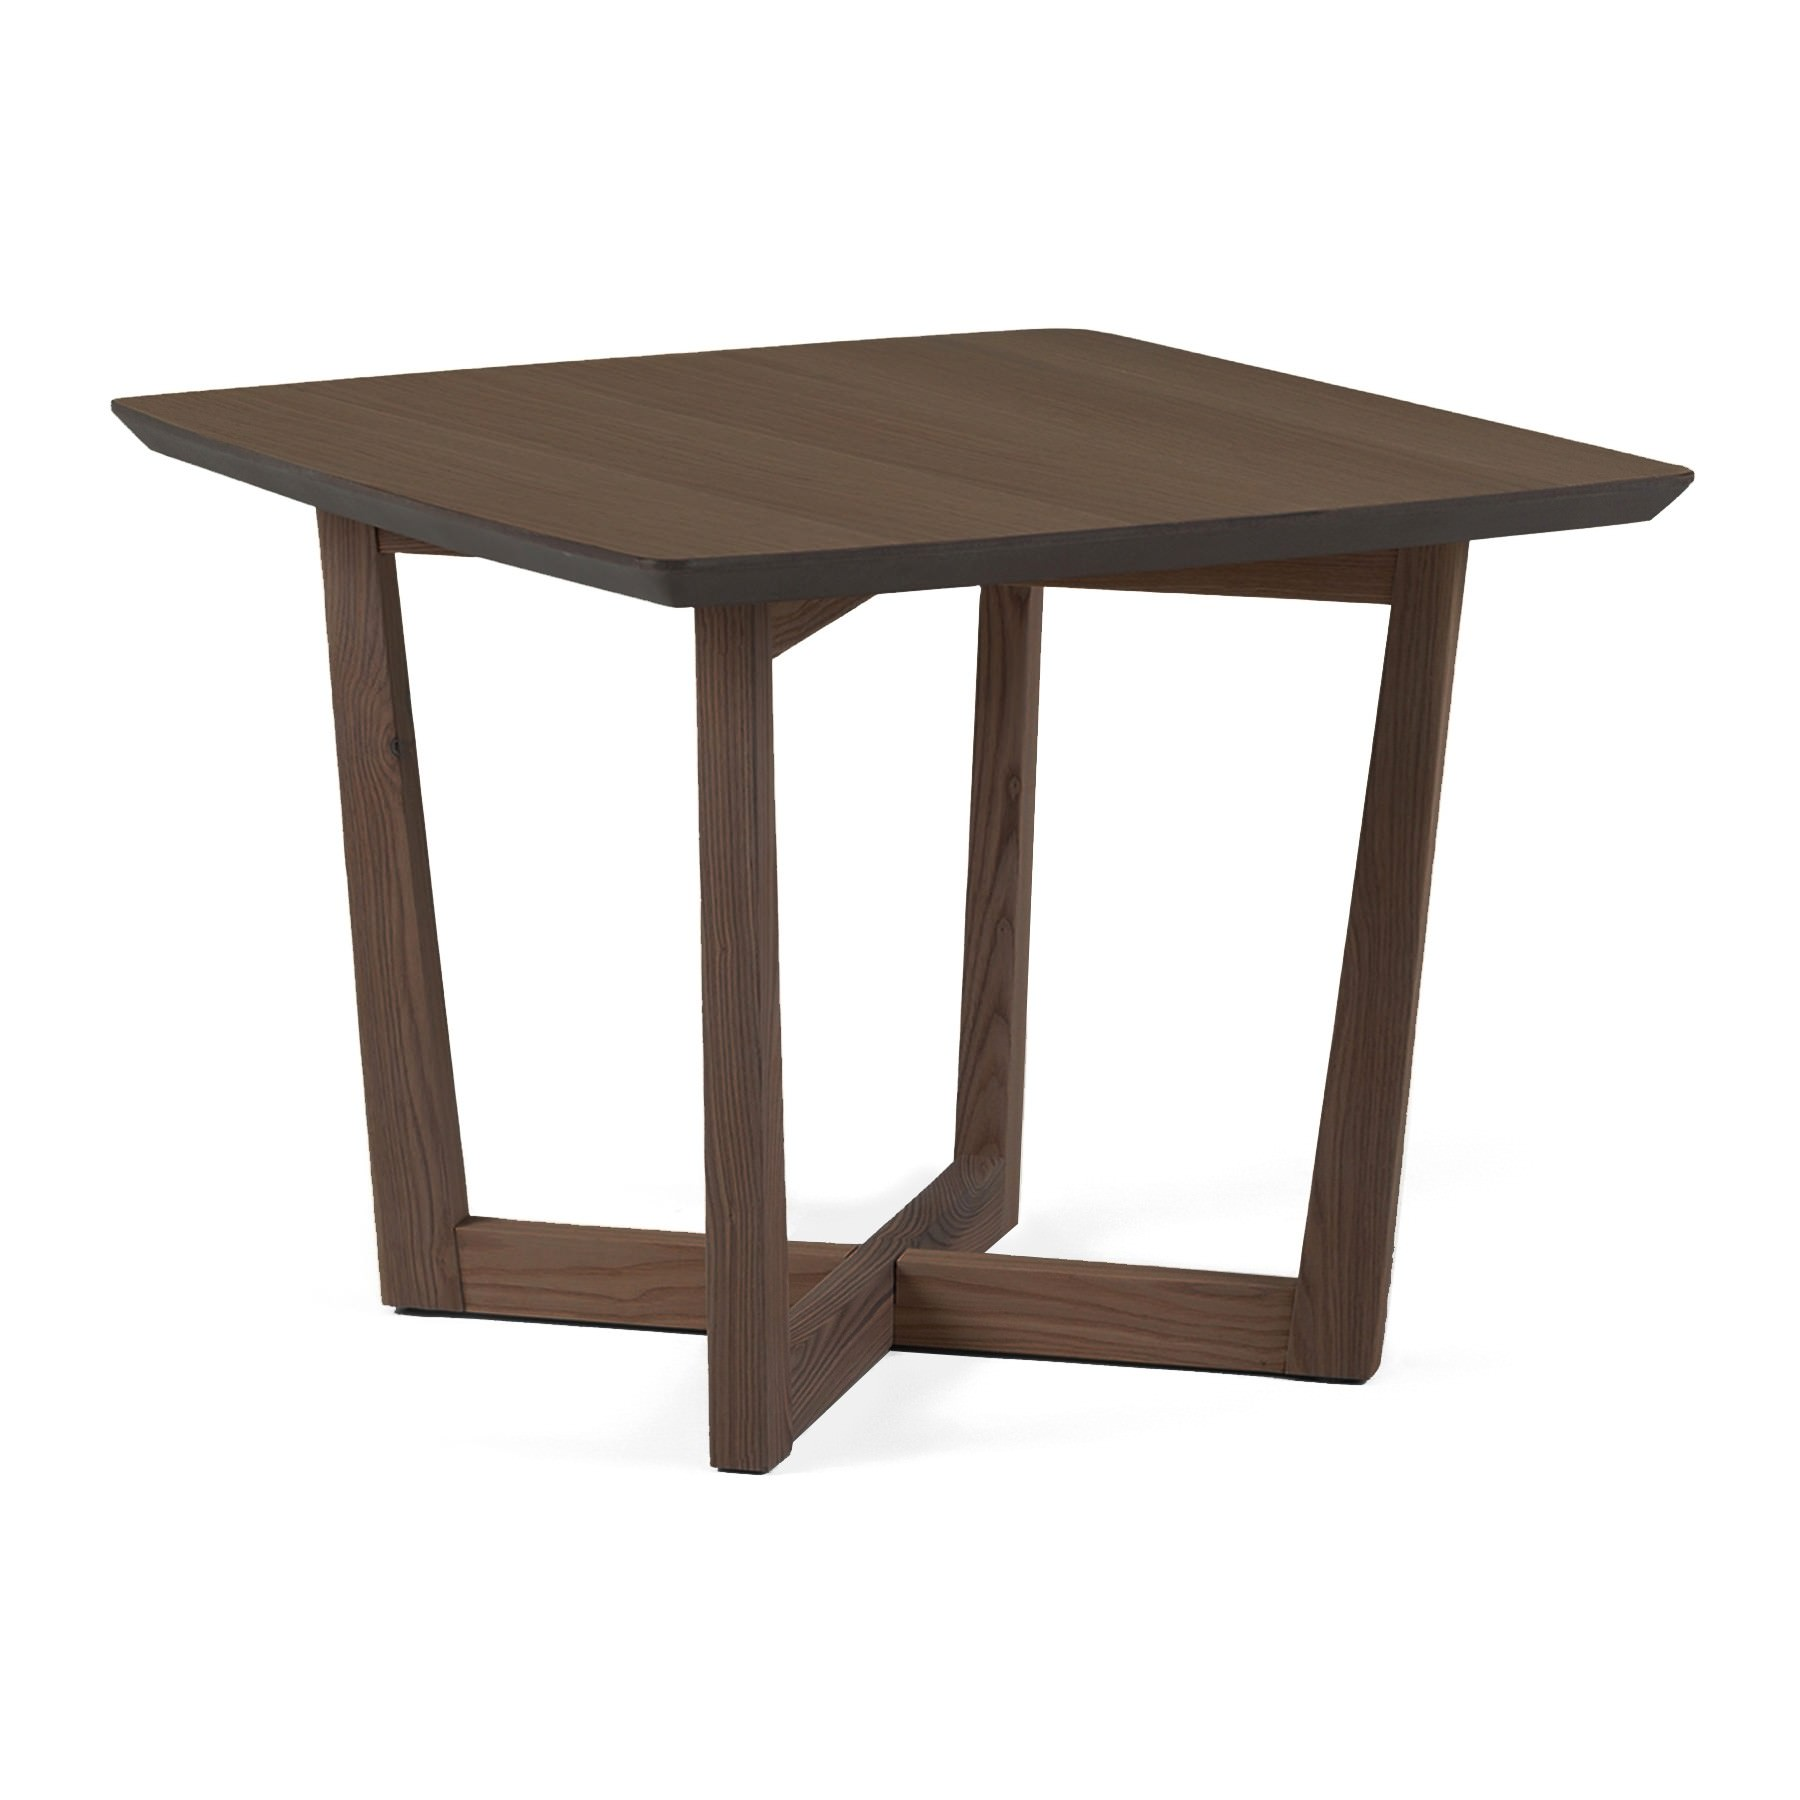 Muto Wooden Square Lamp Table, Walnut